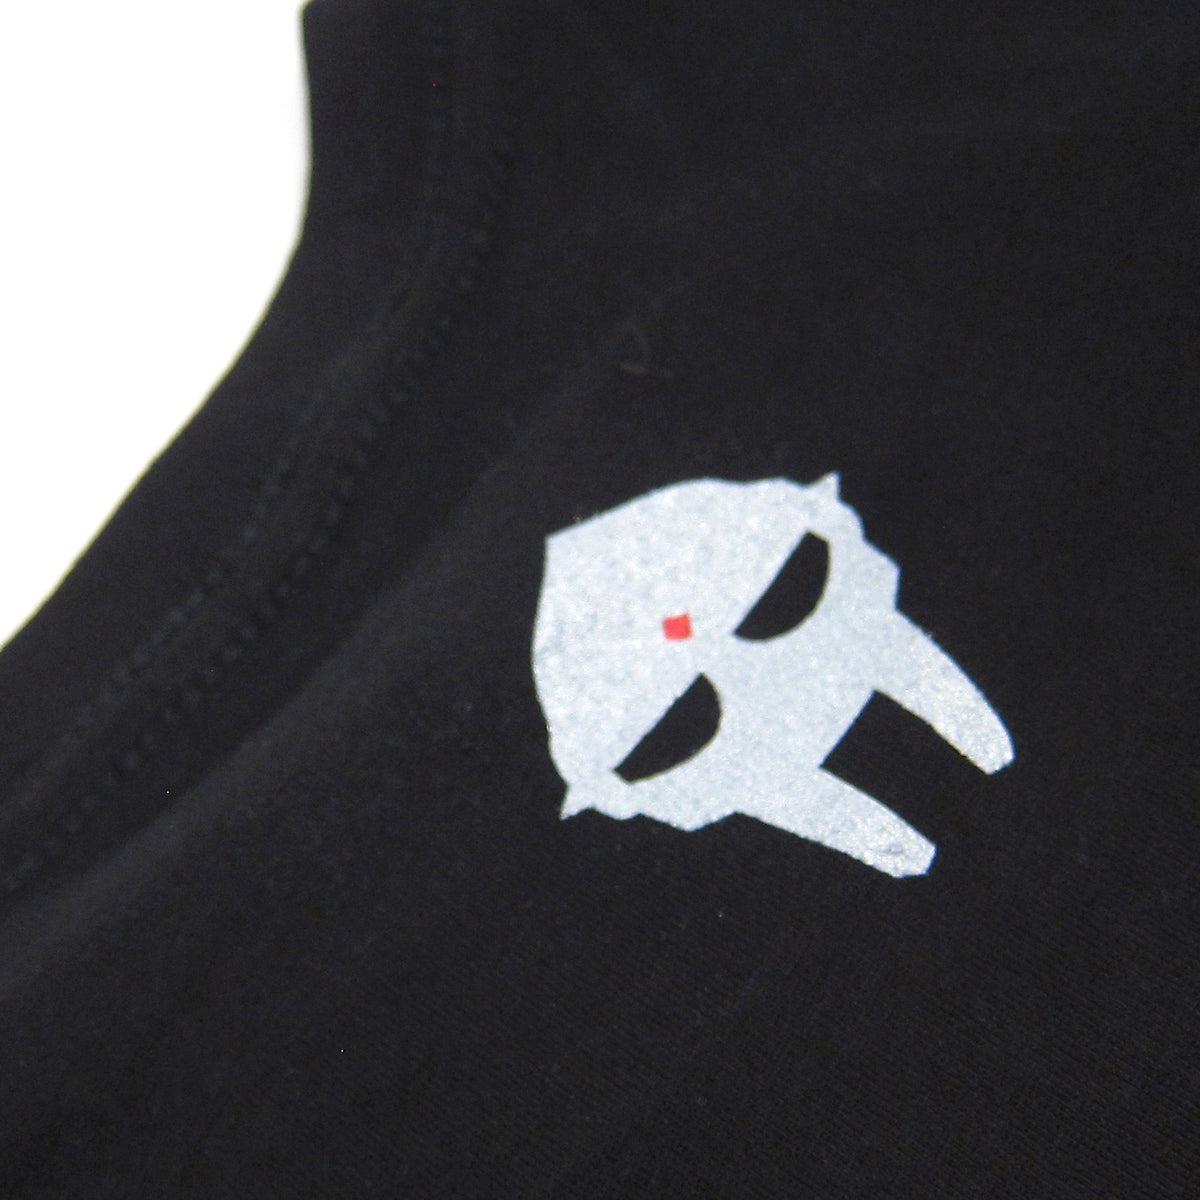 MF Doom: Doom Logo Shirt - Black